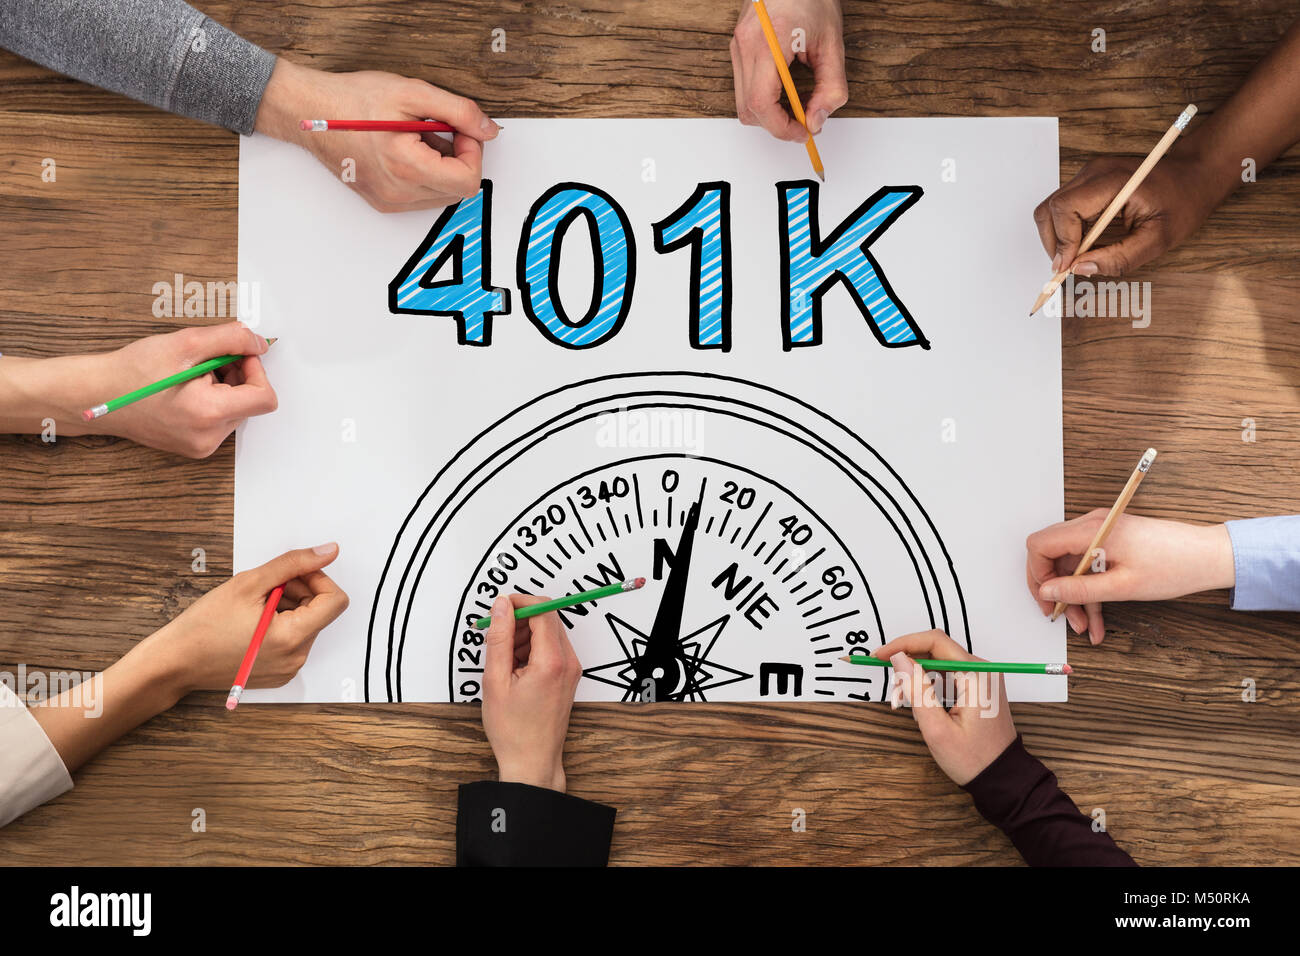 High Angle View Of Group Of People Drawing 401k Pension Plan - Stock Image